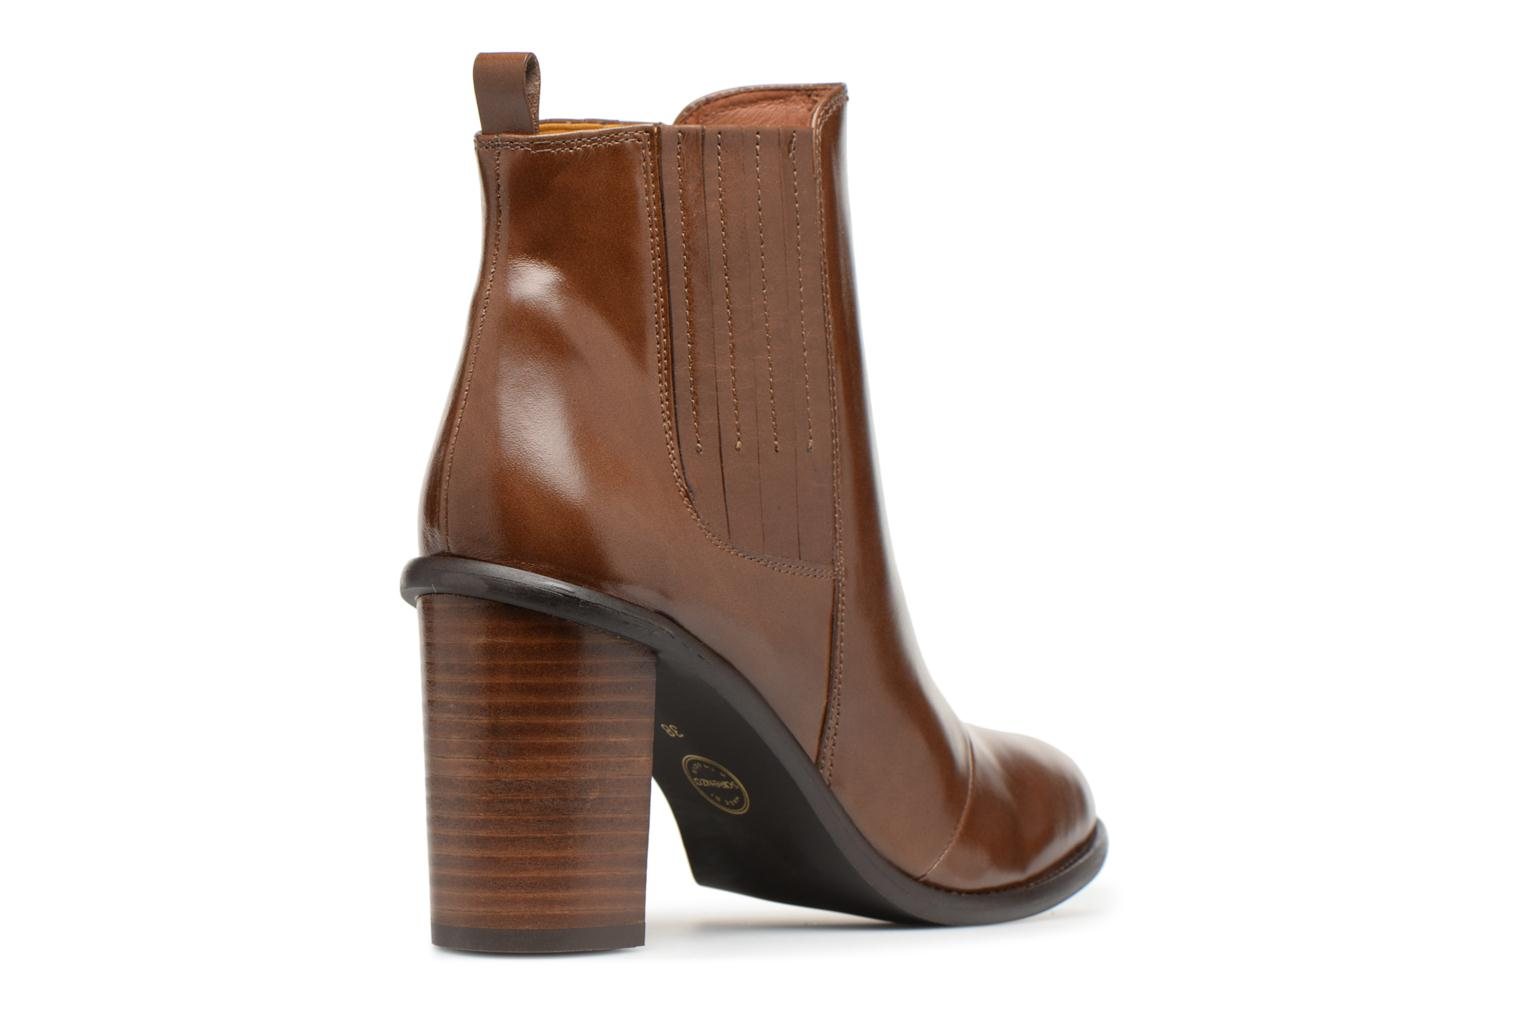 Toundra Sarenza 1 Made Girl Lisse Cuir Talons Marron Bottines à By xAxfE